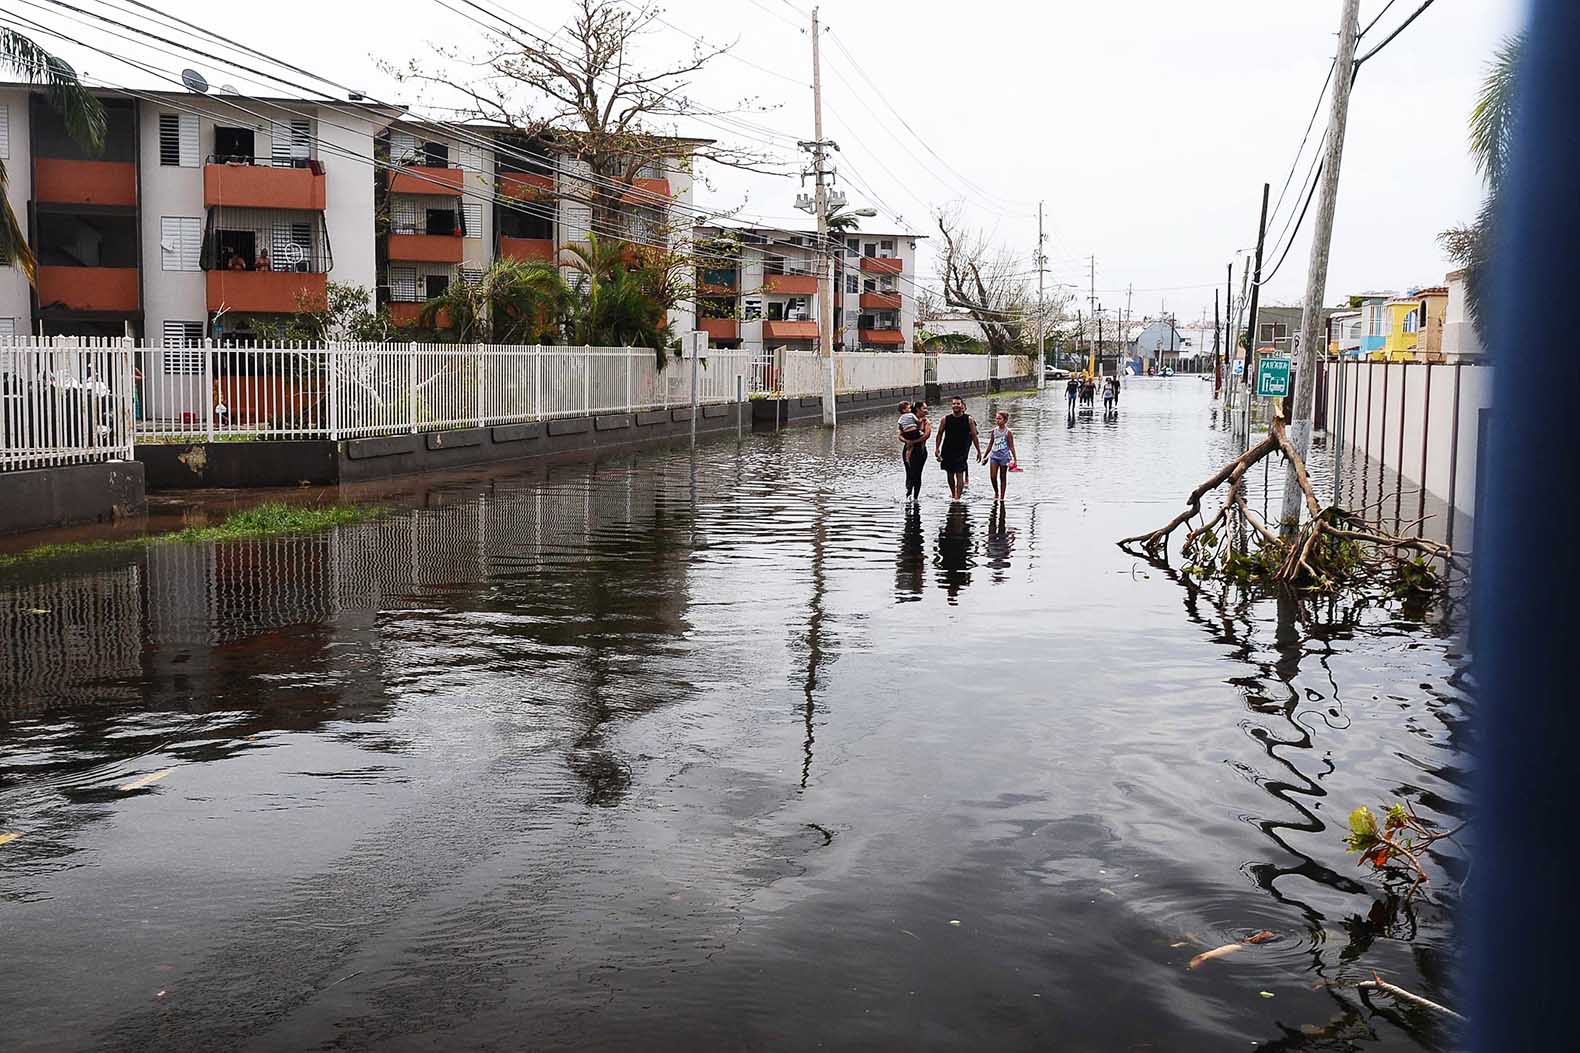 Puerto Rico electricity crisis sparks interest in renewable energy